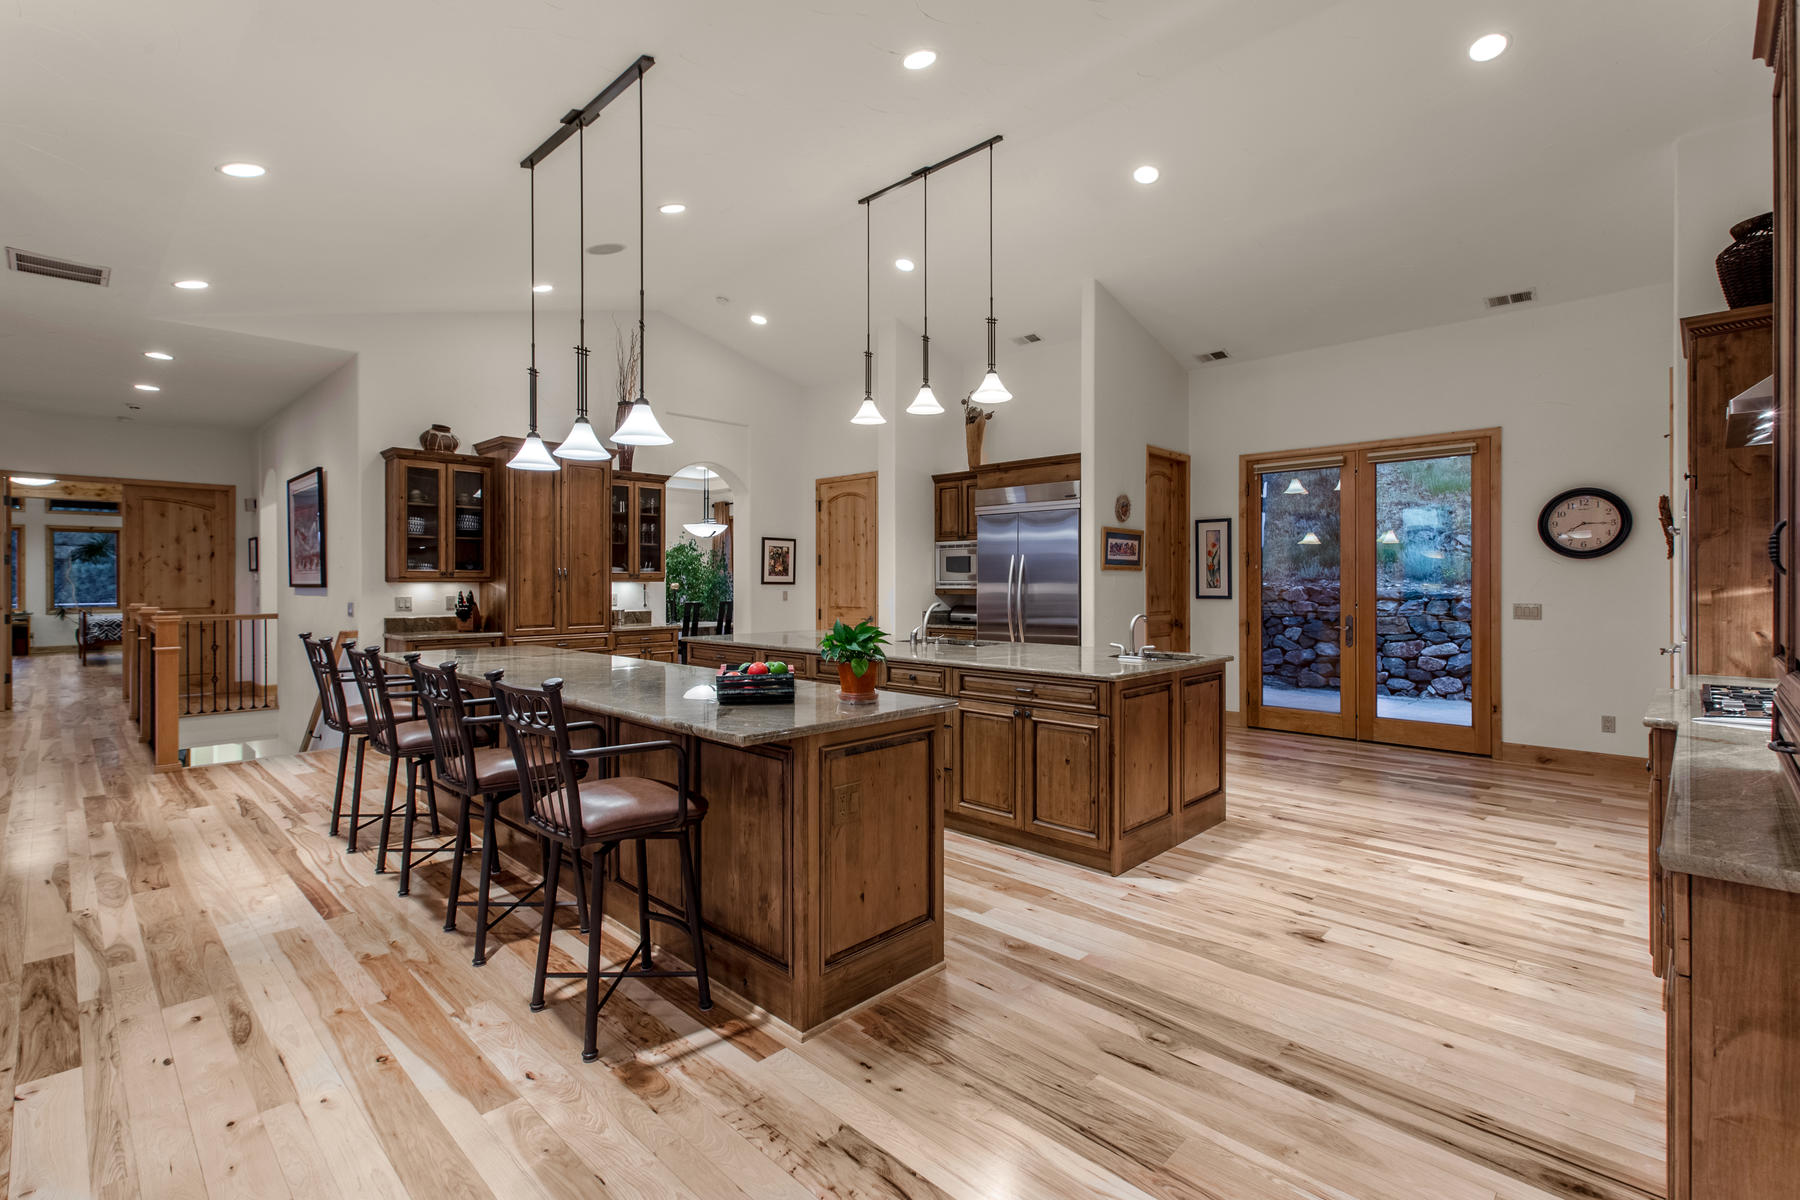 Additional photo for property listing at Genesee Jewel Sparkles in Its Perfection & Allure 2223 Montane Drive East Golden, Colorado 80401 United States